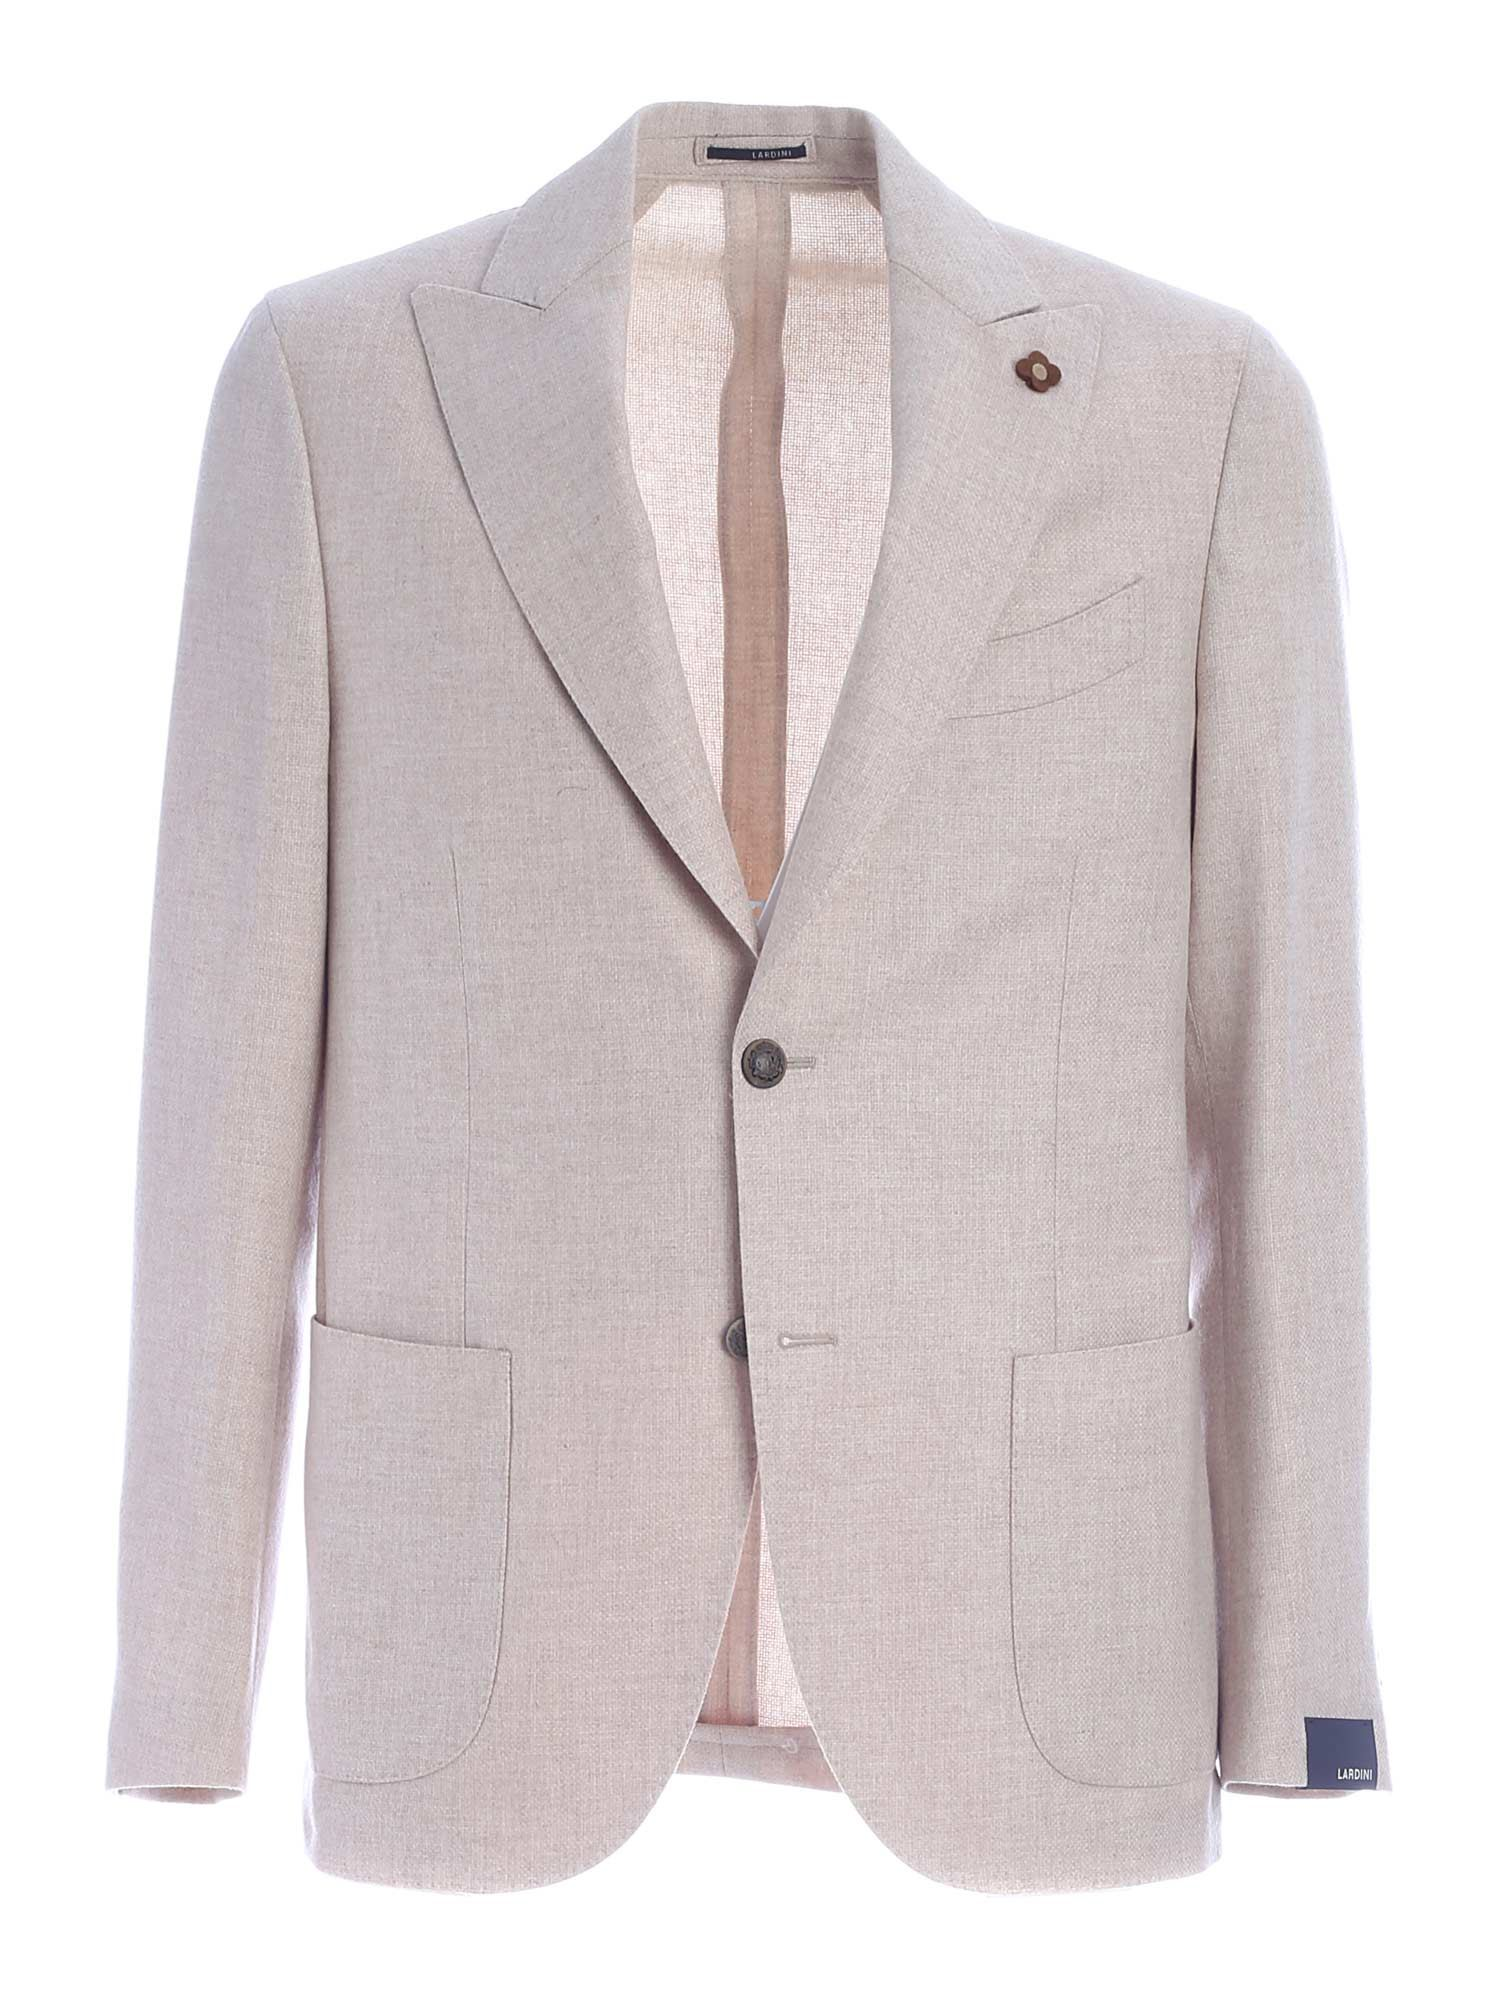 Lardini SINGLE-BREASTED JACKET IN BEIGE